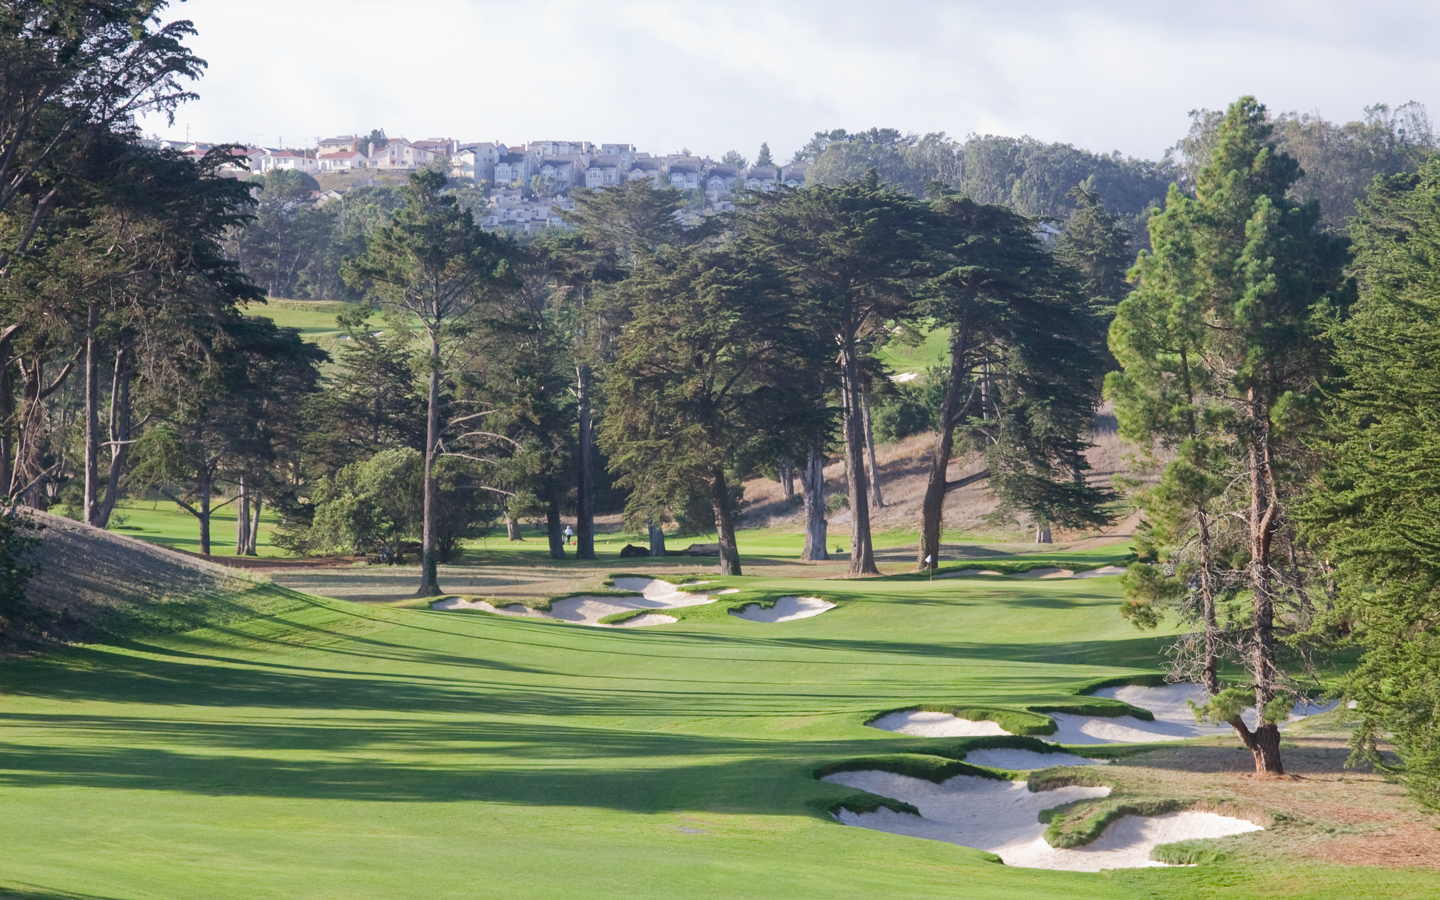 California Golf Club